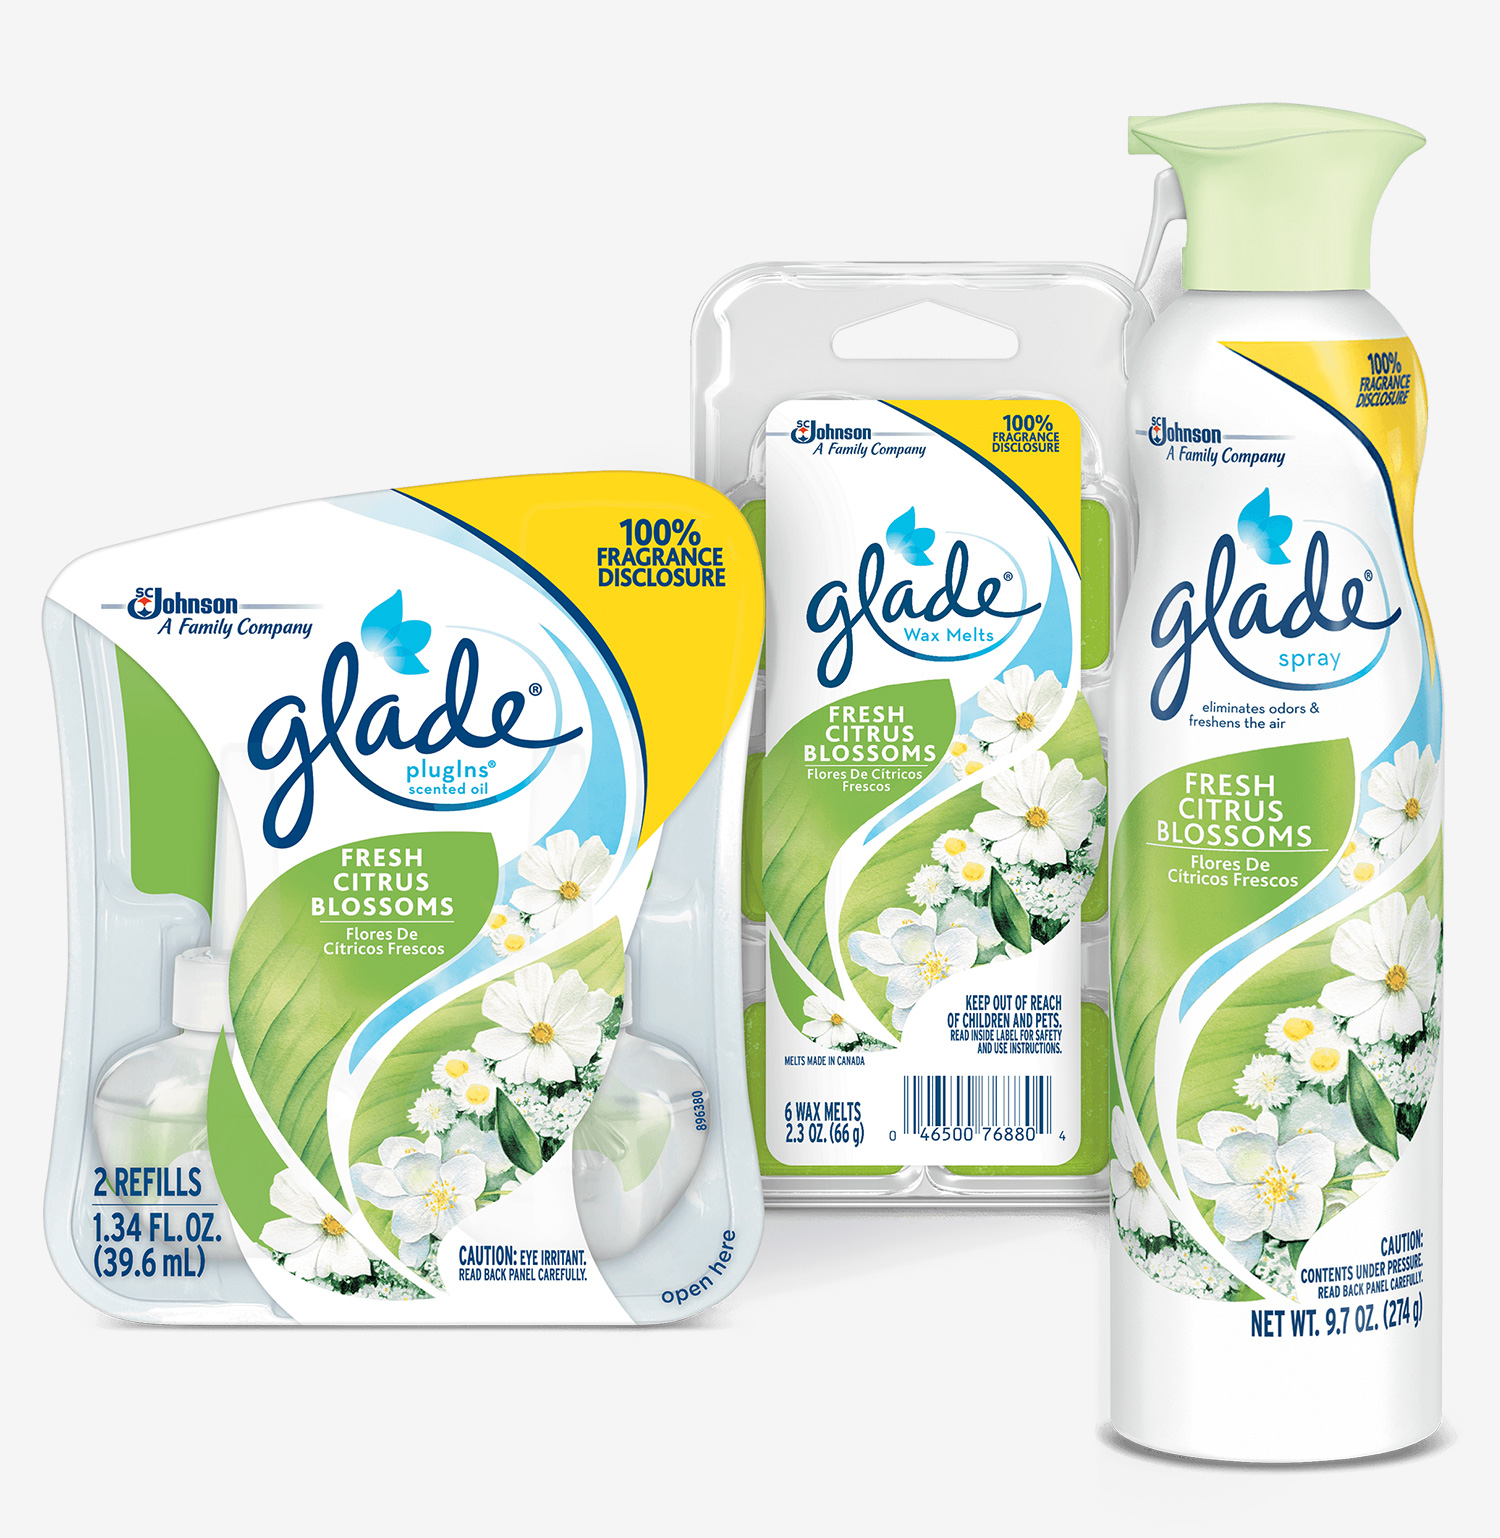 SC Johnson Glade Fresh Citrus Blossoms Air Freshener